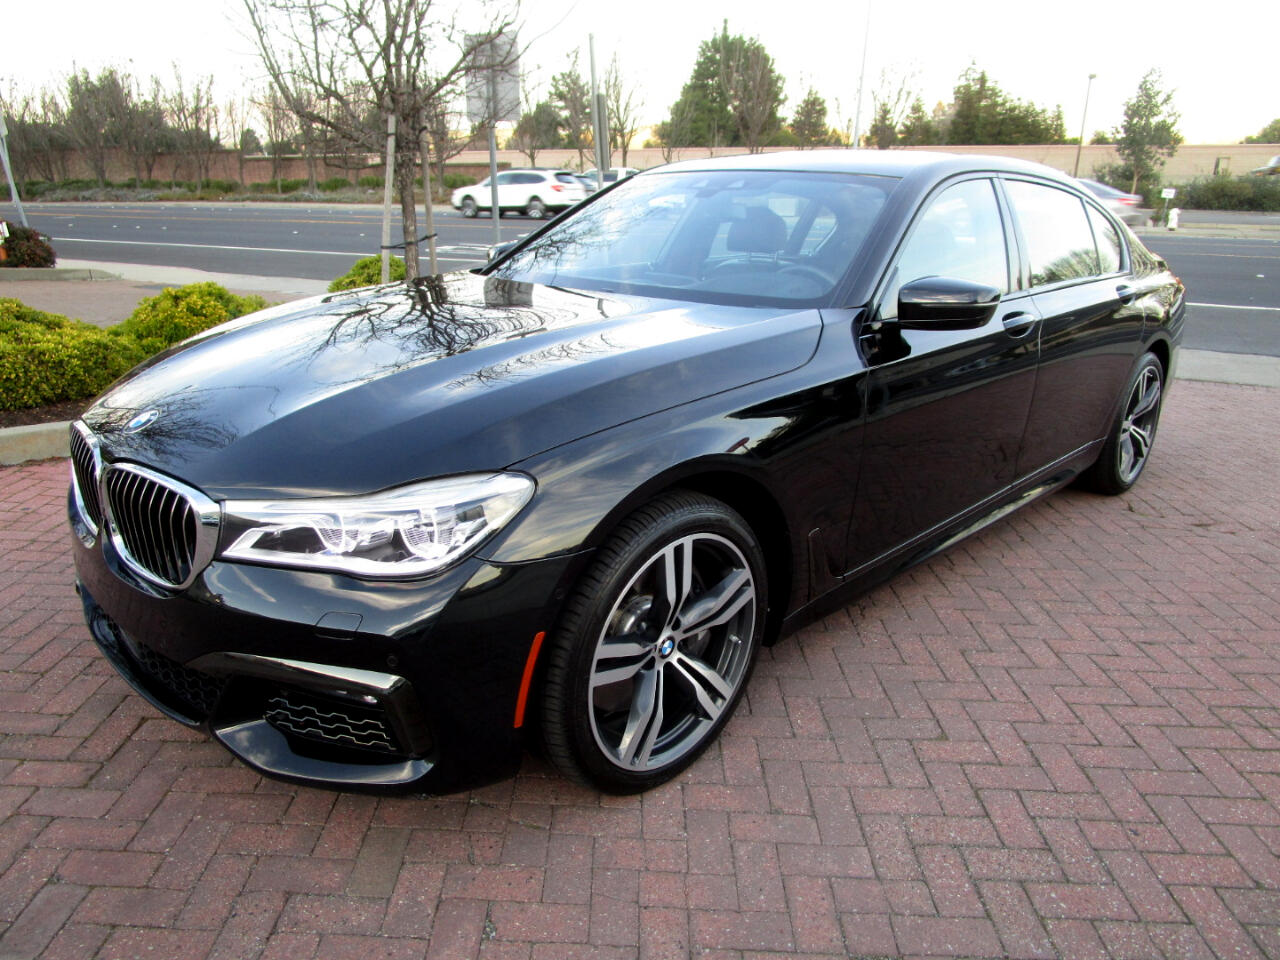 2016 BMW 750i xDrive MSRP $130K*AUTOBAHN PKG*DRIVER ASSIST PLUS*EXEC*